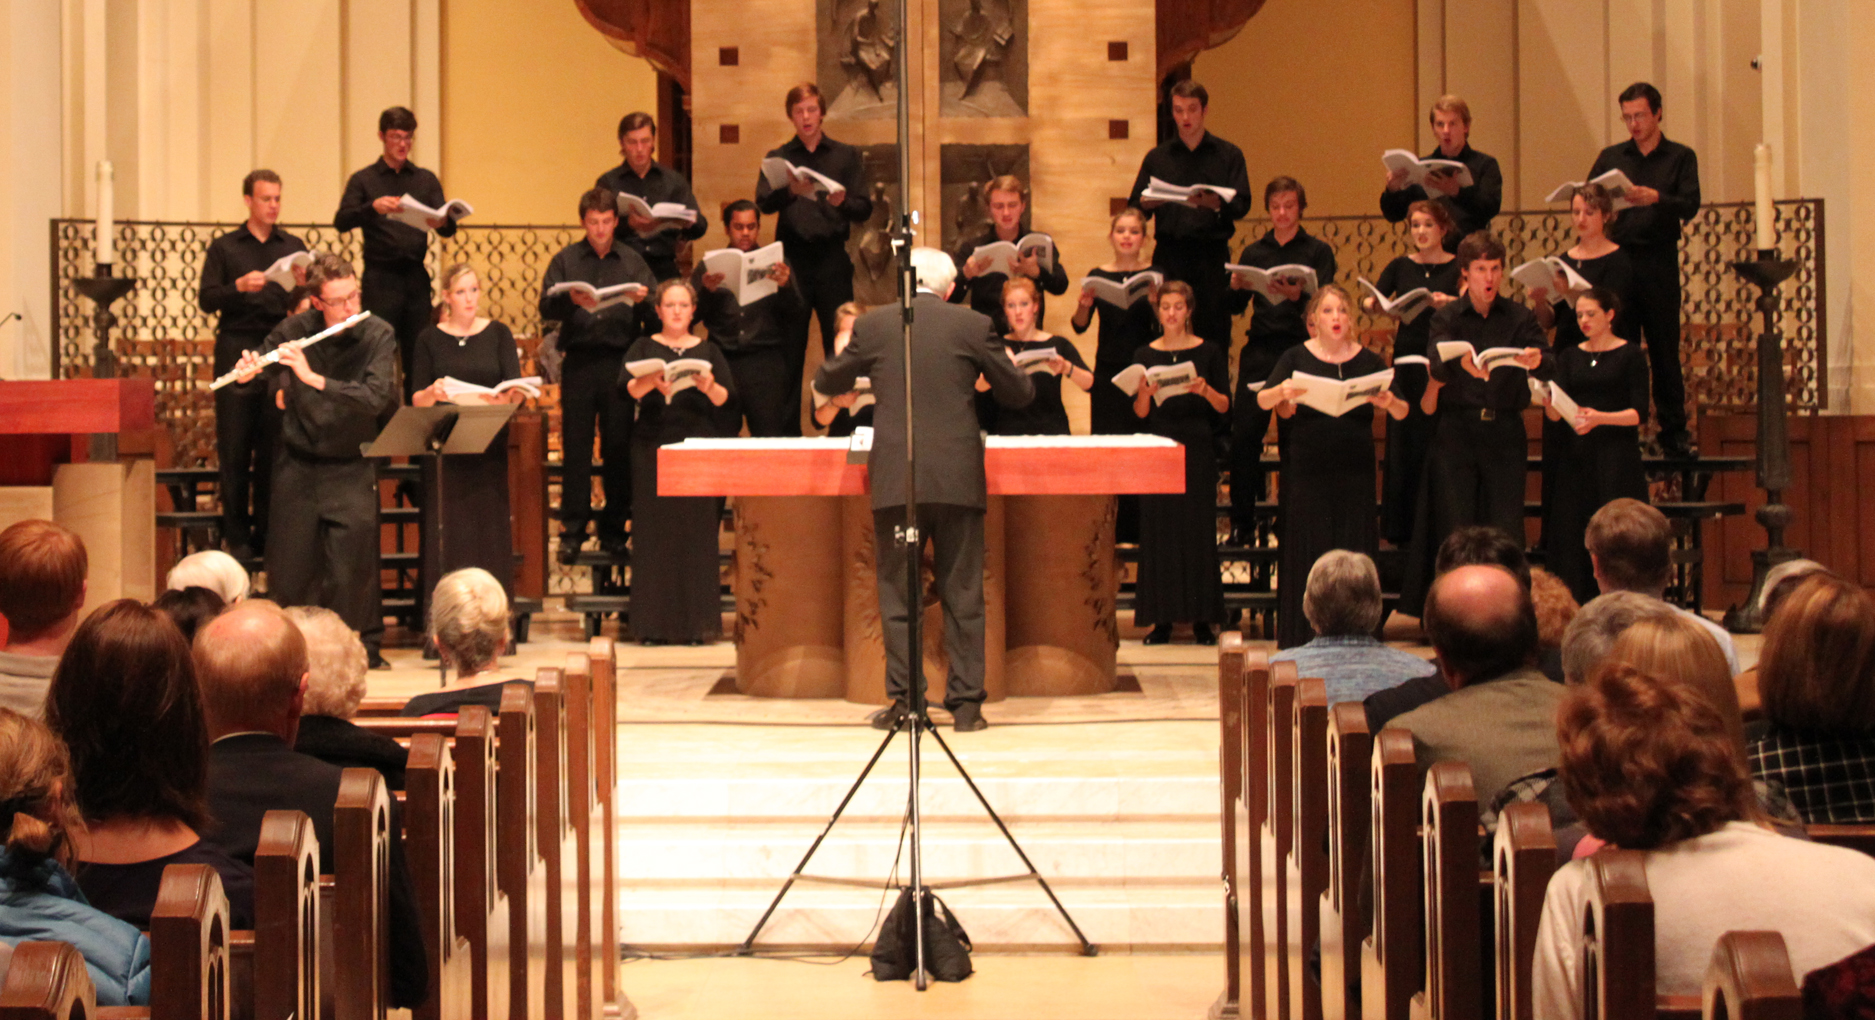 <p>The audience listens as the choir sings a composition from the first half of the performance. (Ariel Kendall/TommieMedia)</p>